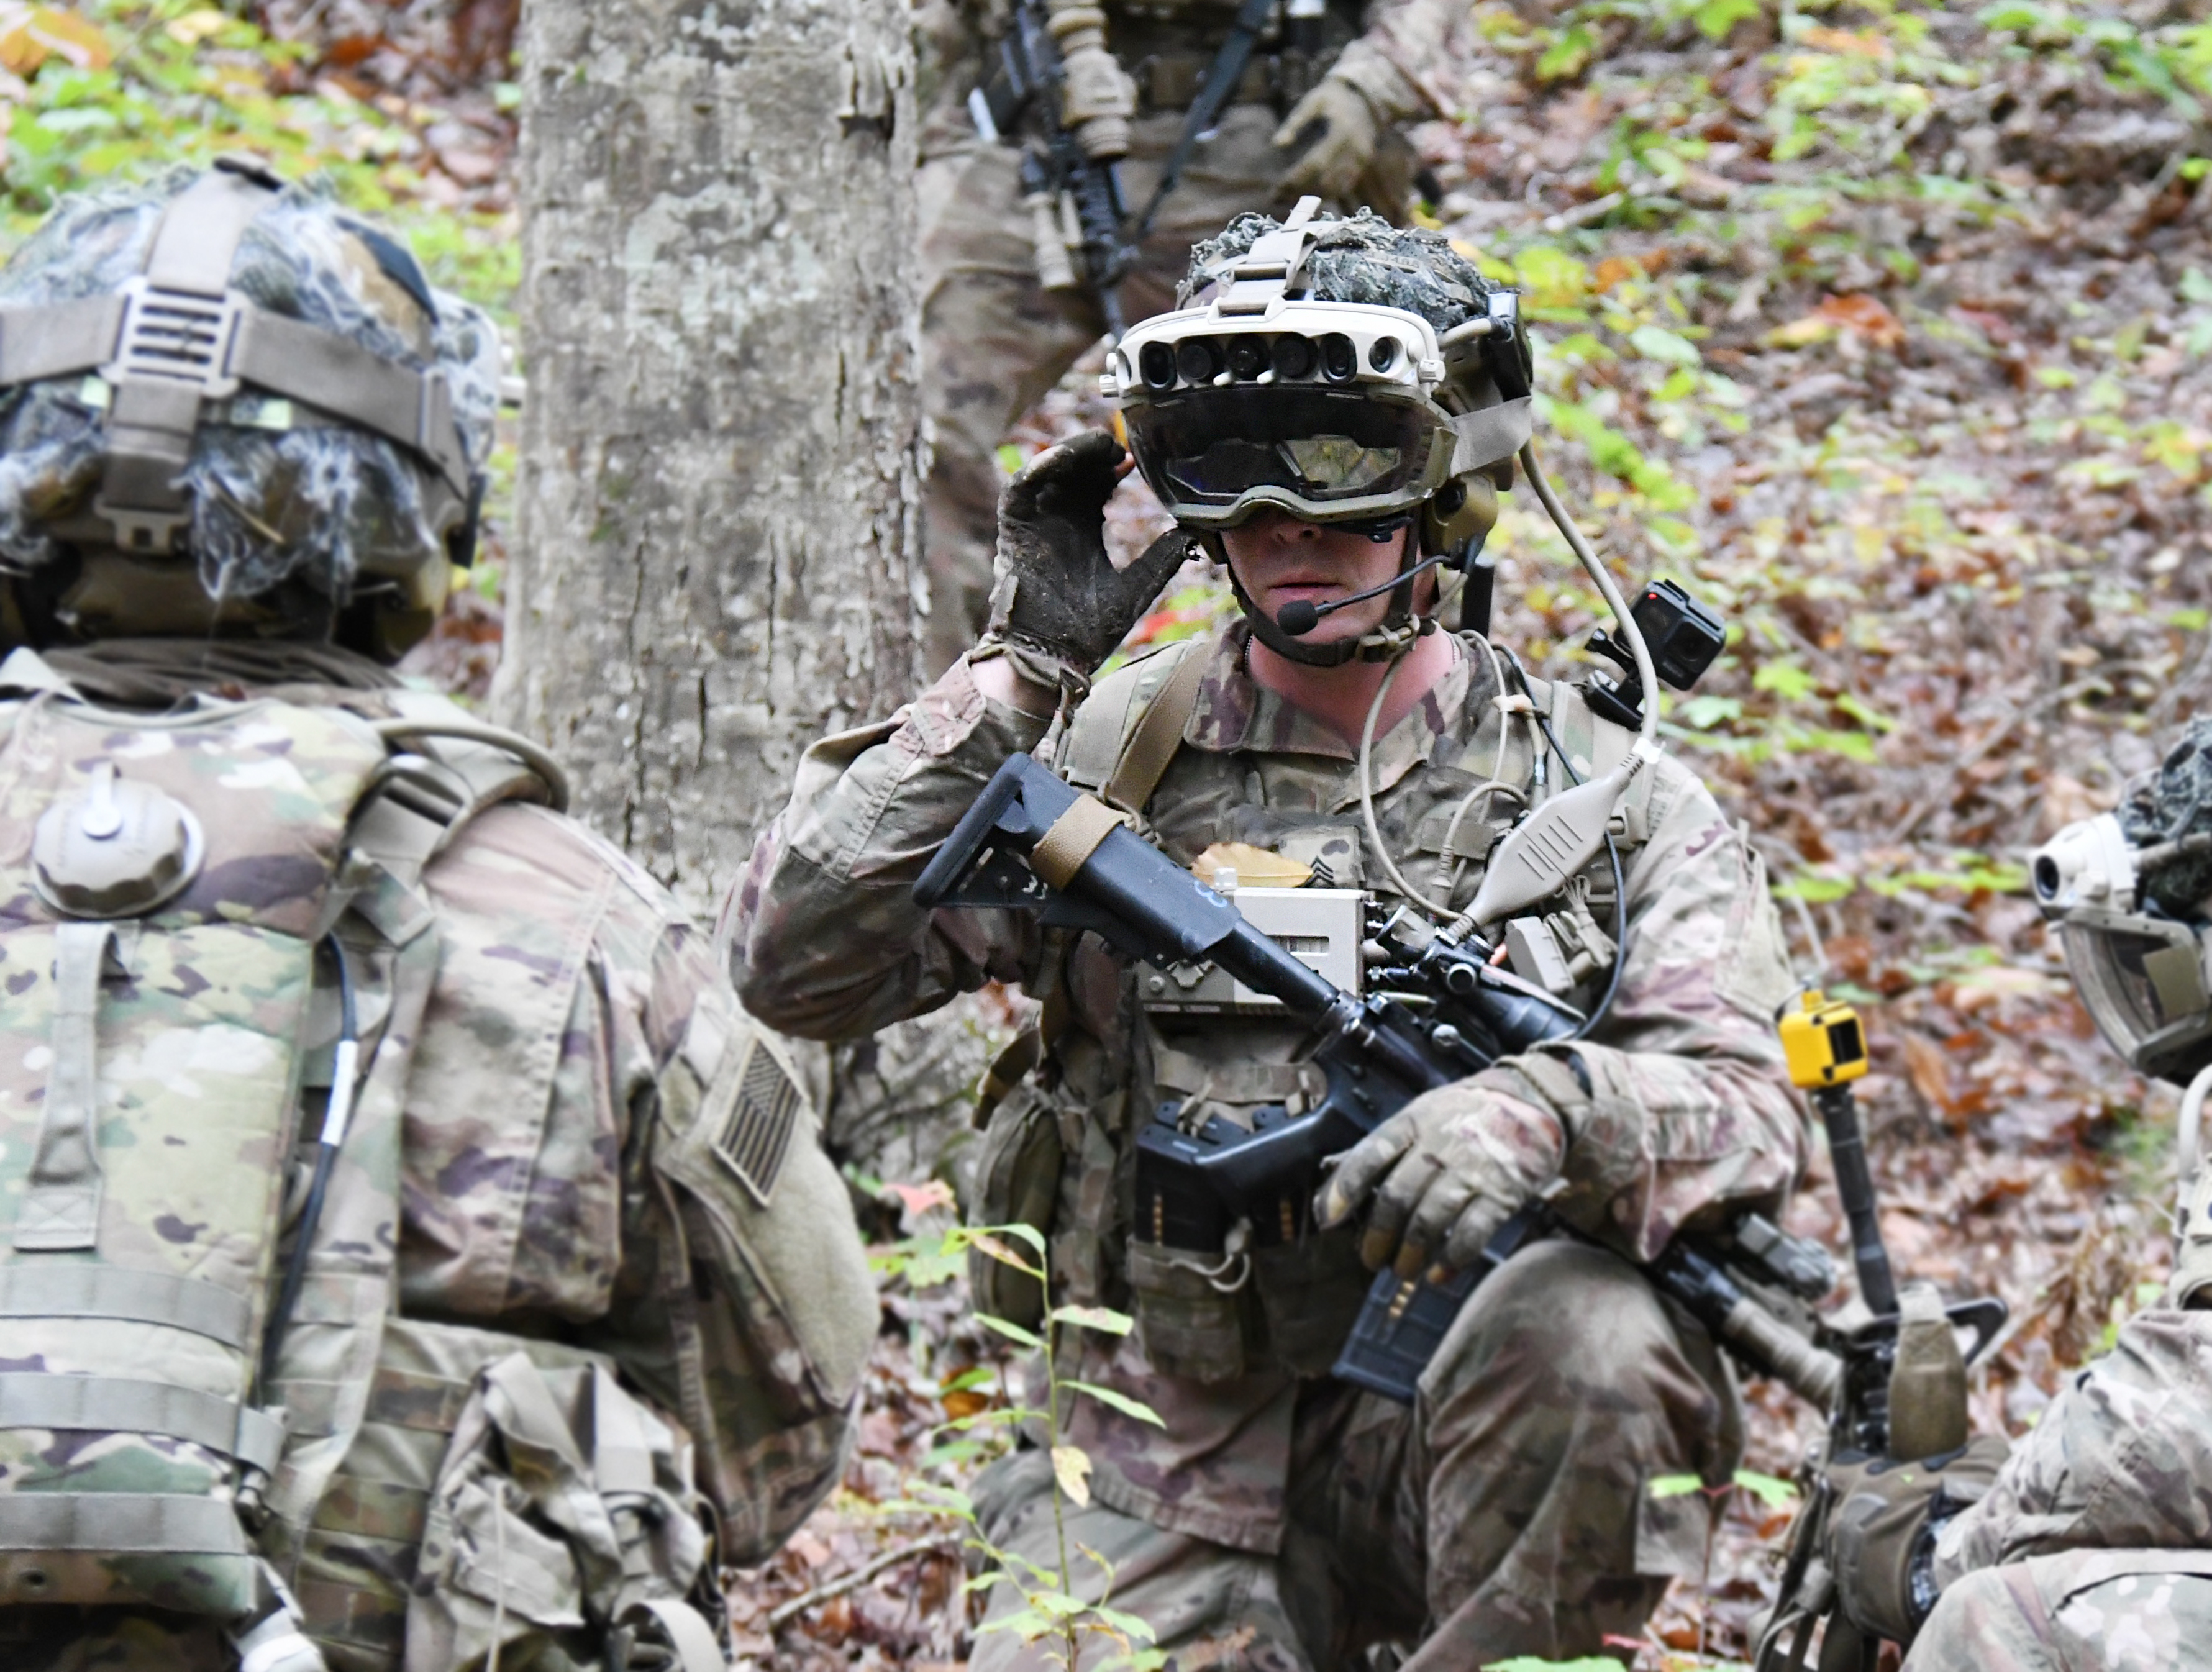 Photo: Bridgett Site, A Soldier uses the IVAS during STP 3 in October 2020.